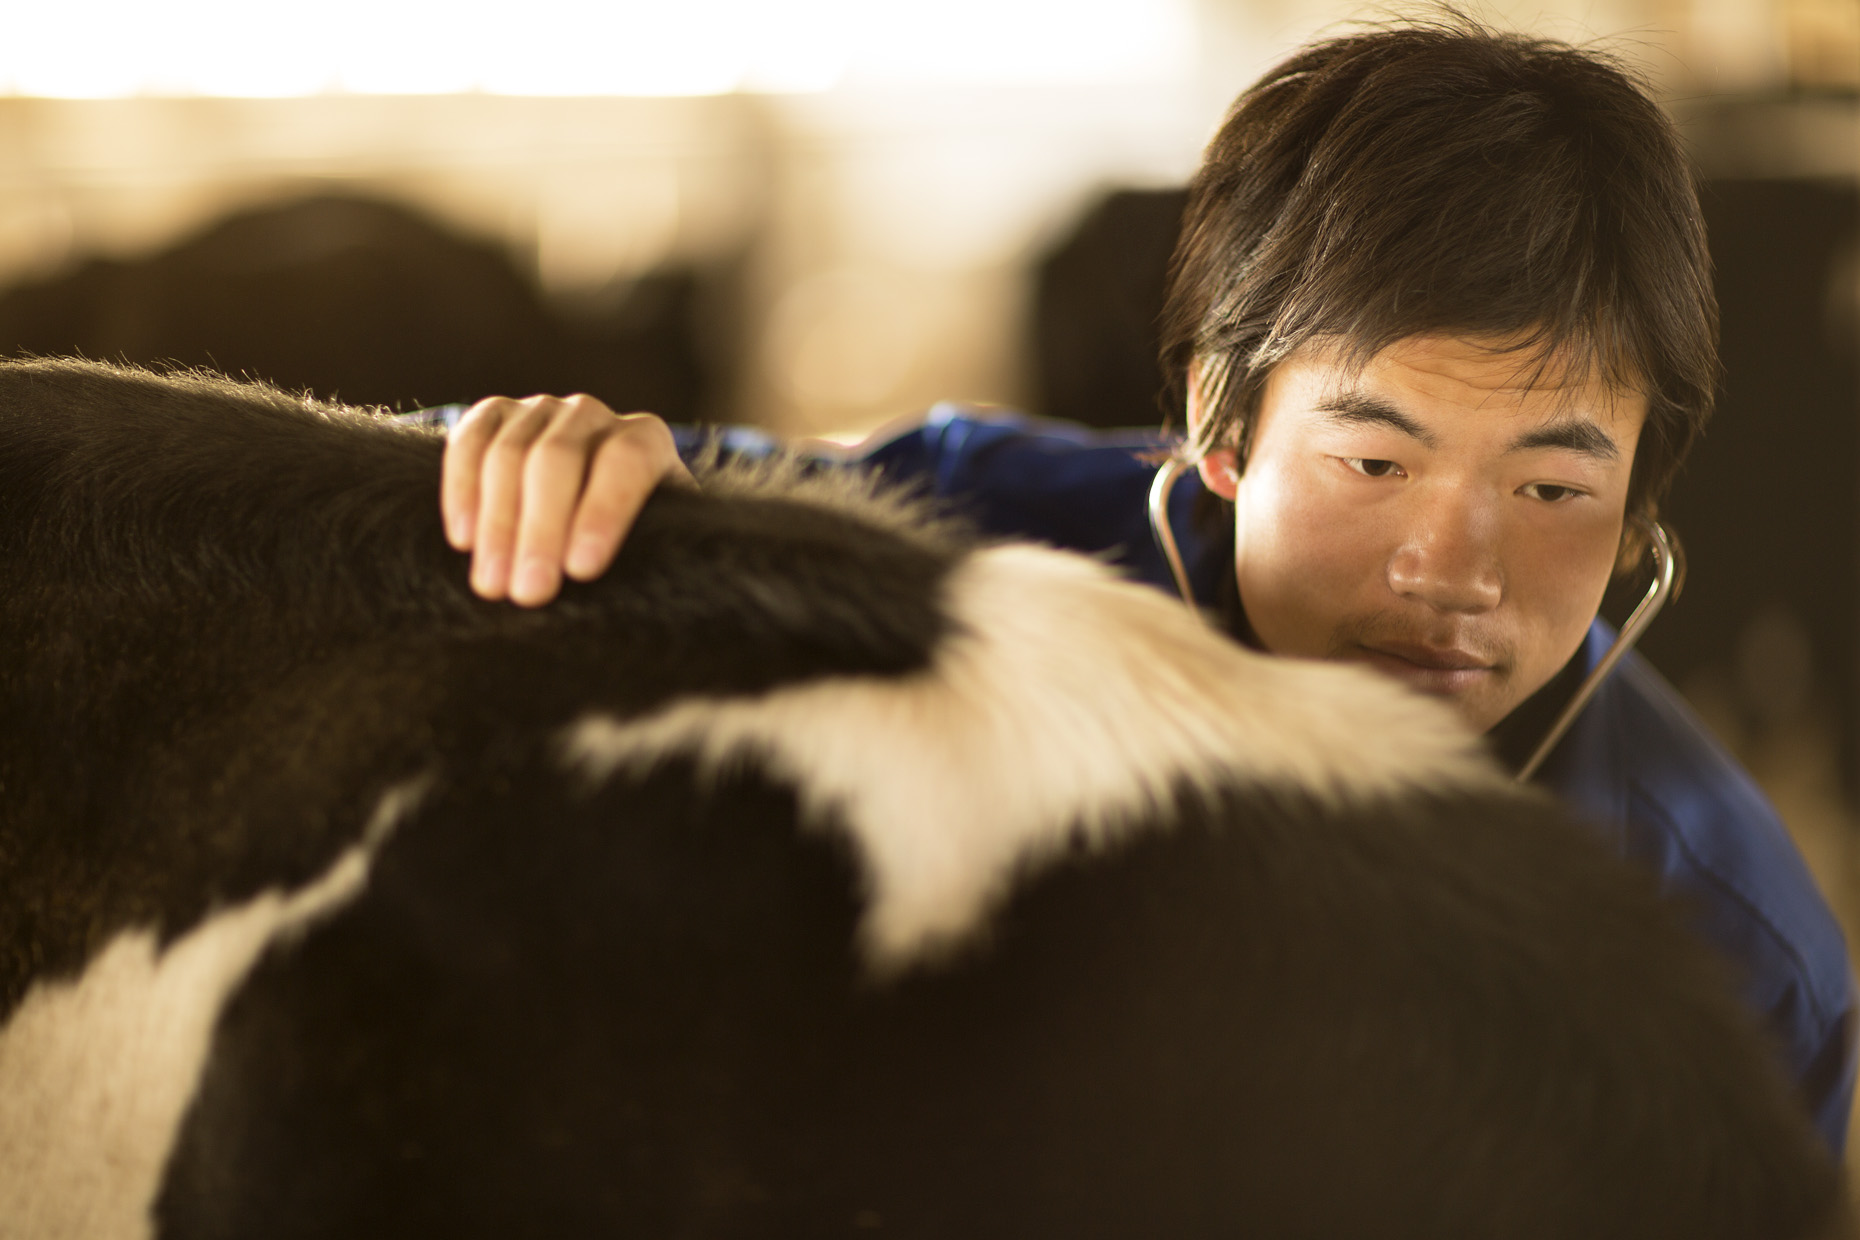 015_Hirez_China_Dairy_F6A6257